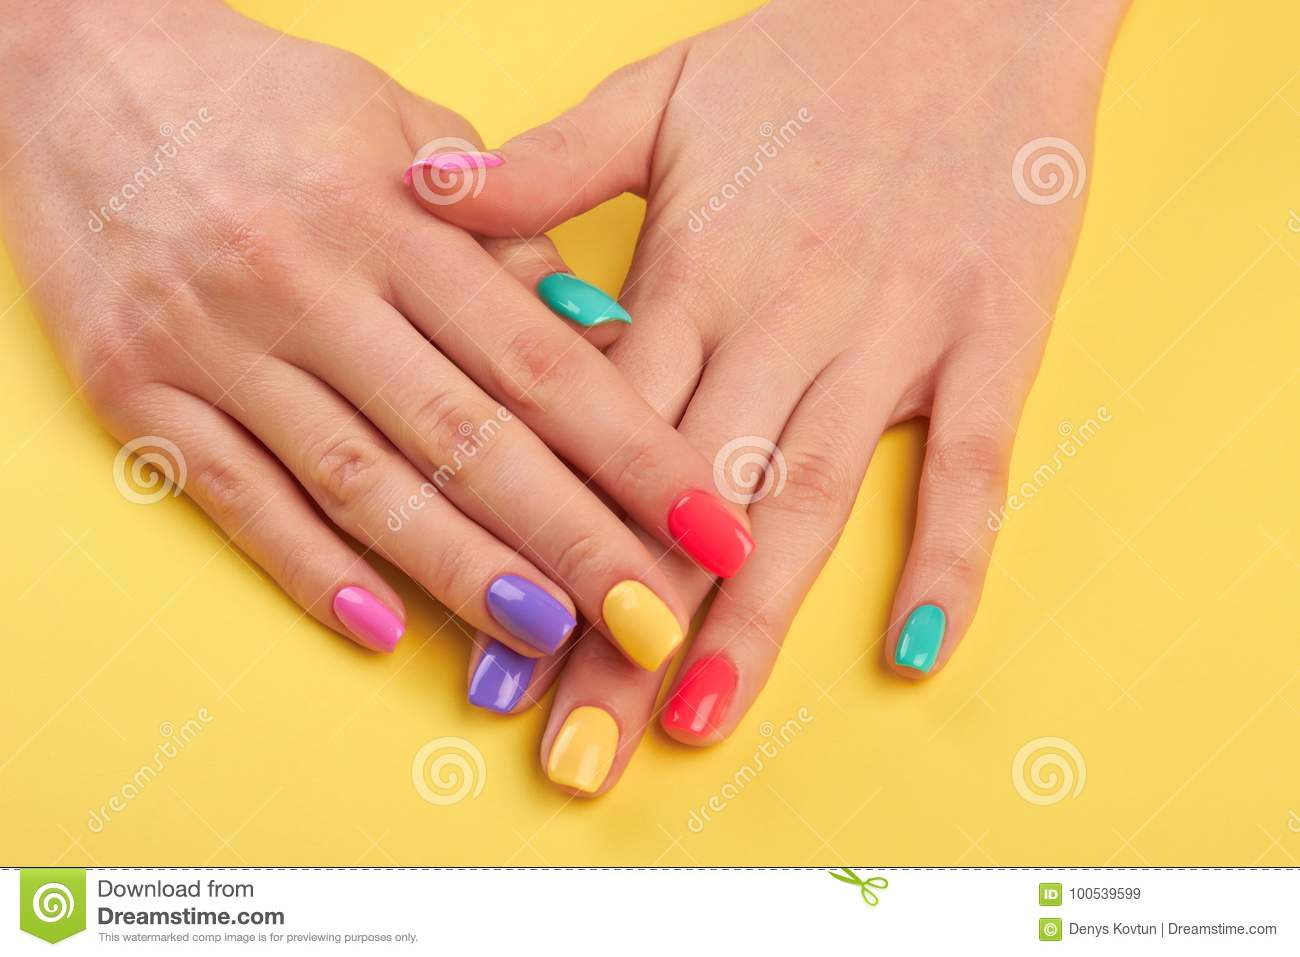 Woman Nails Painted In Different Colors. Stock Image - Image of ...